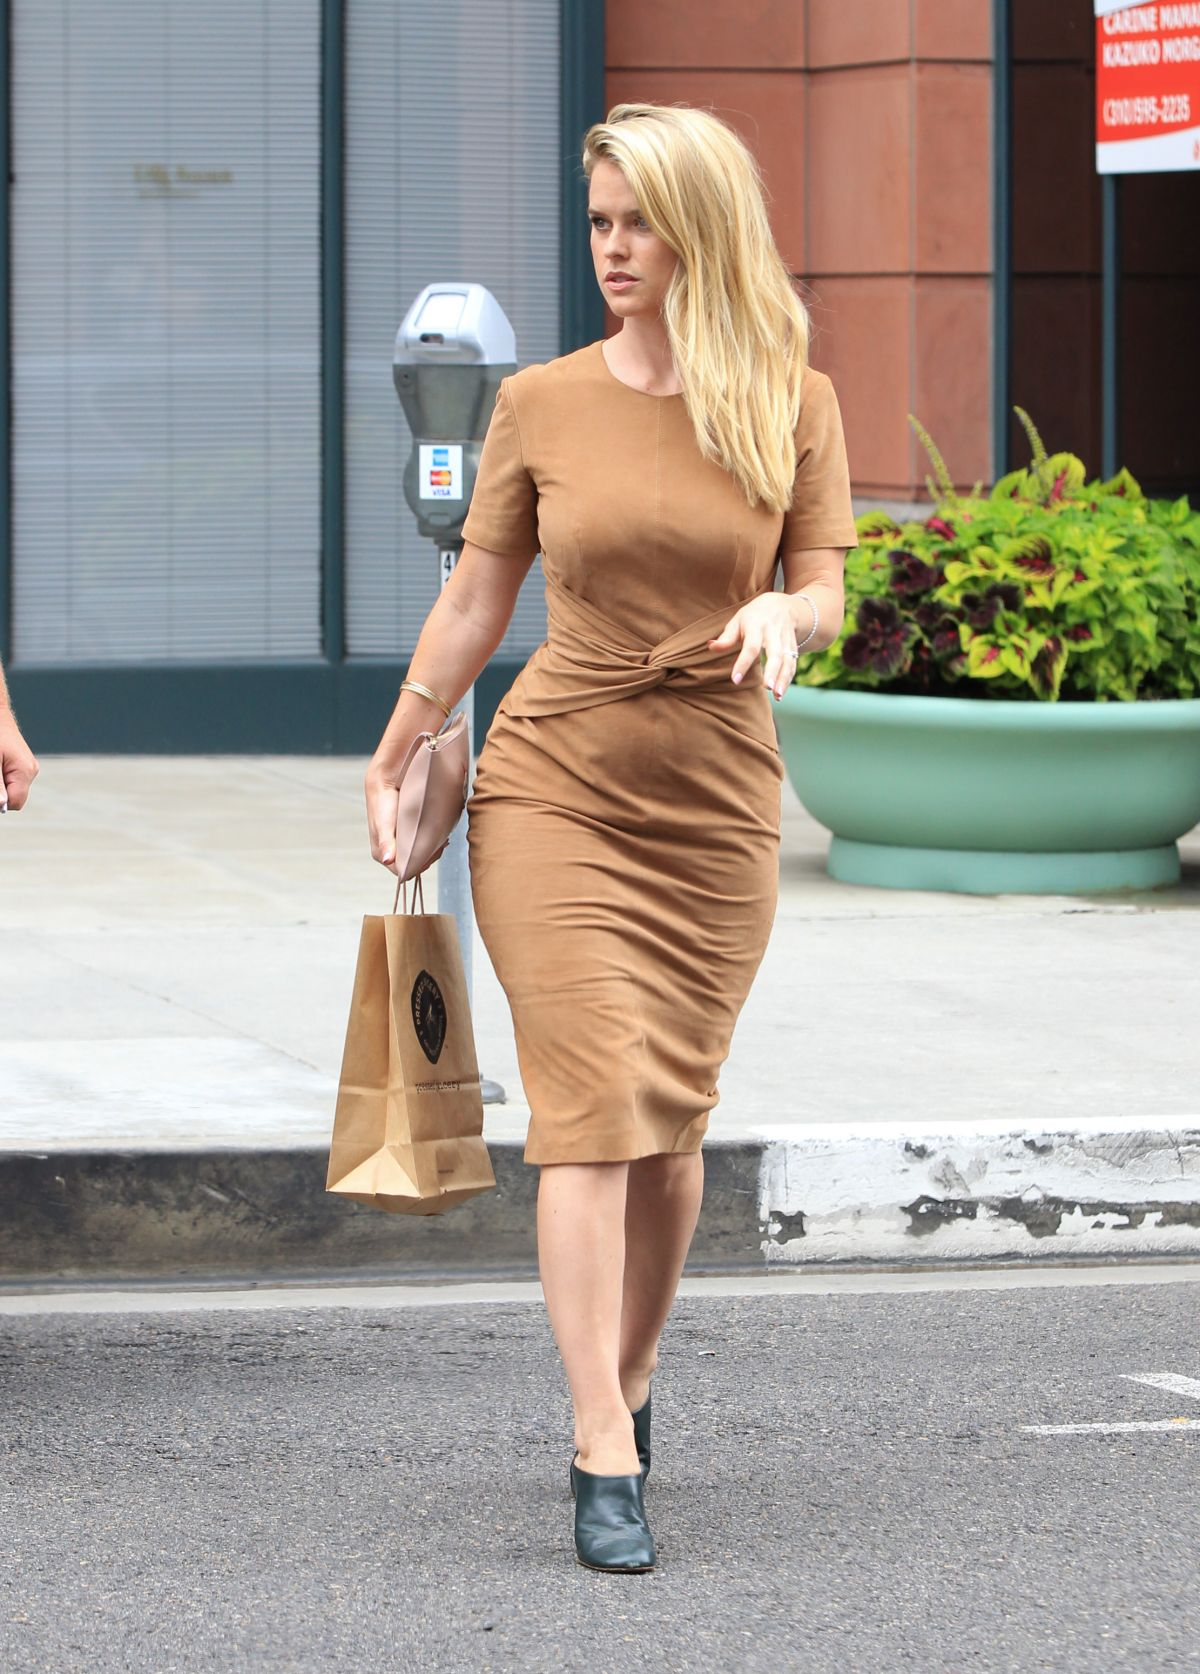 alice eve out and about beverly hills 09 15 2015 hawtcelebs